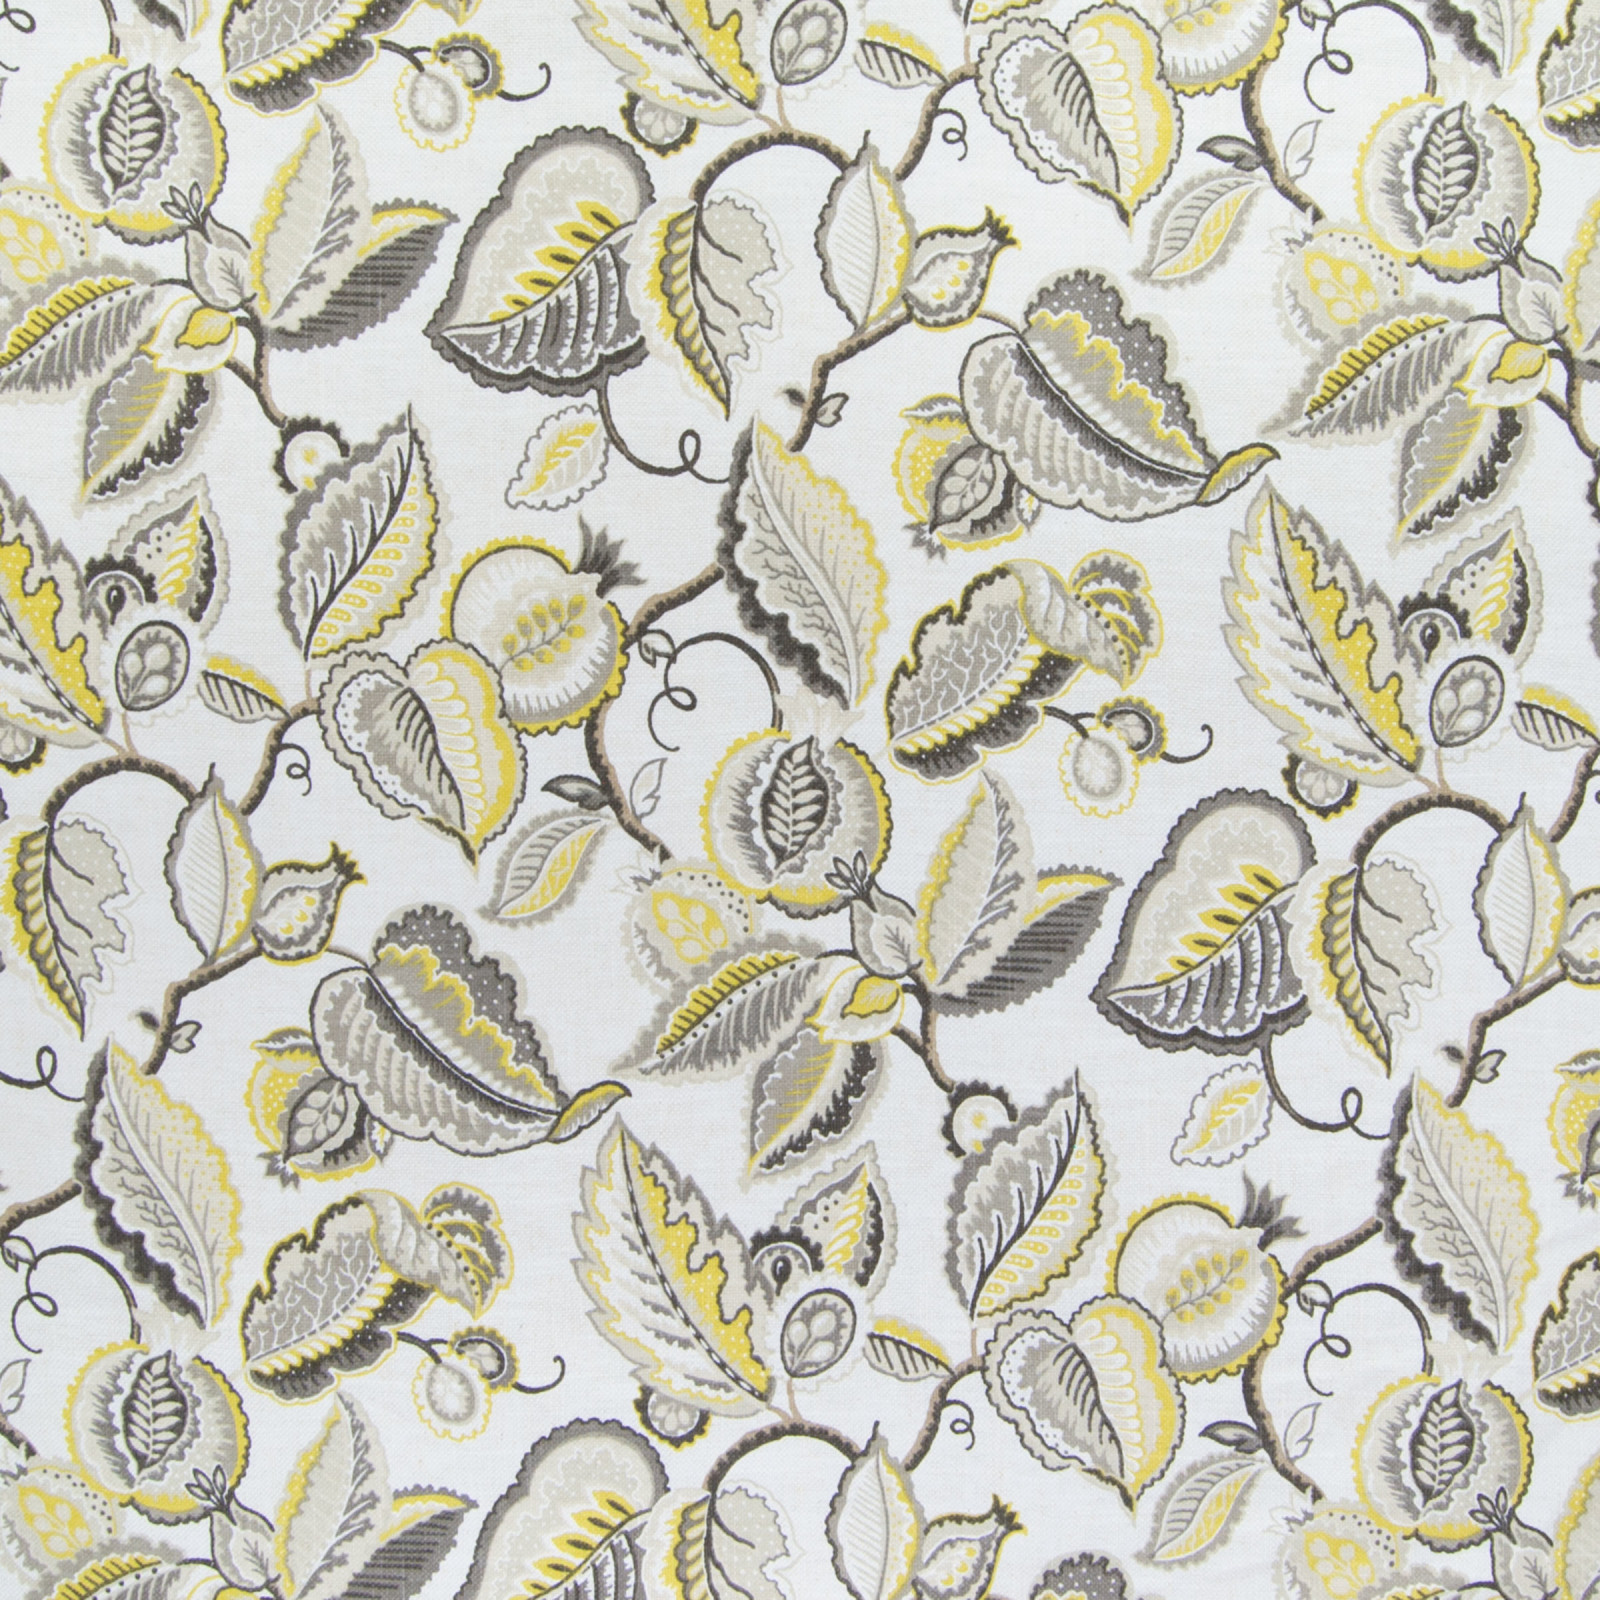 Suede Upholstery Fabric >> Pumice Yellow and Gray Foliage Print Upholstery Fabric